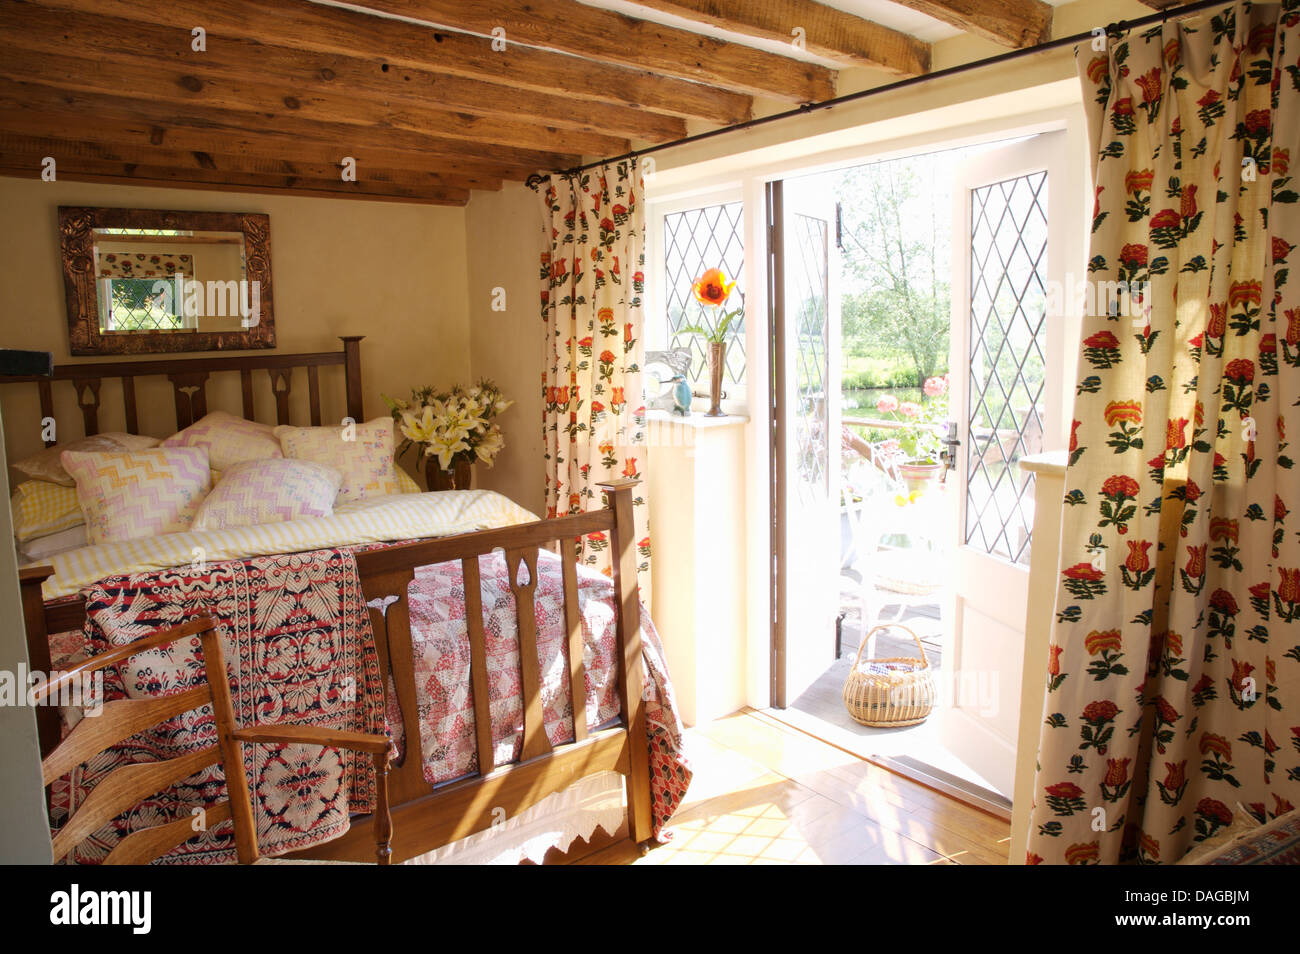 Floral Curtains At French Windows To Balcony In Cottage Bedroom With Pink Quilt On Simple Wooden Bed